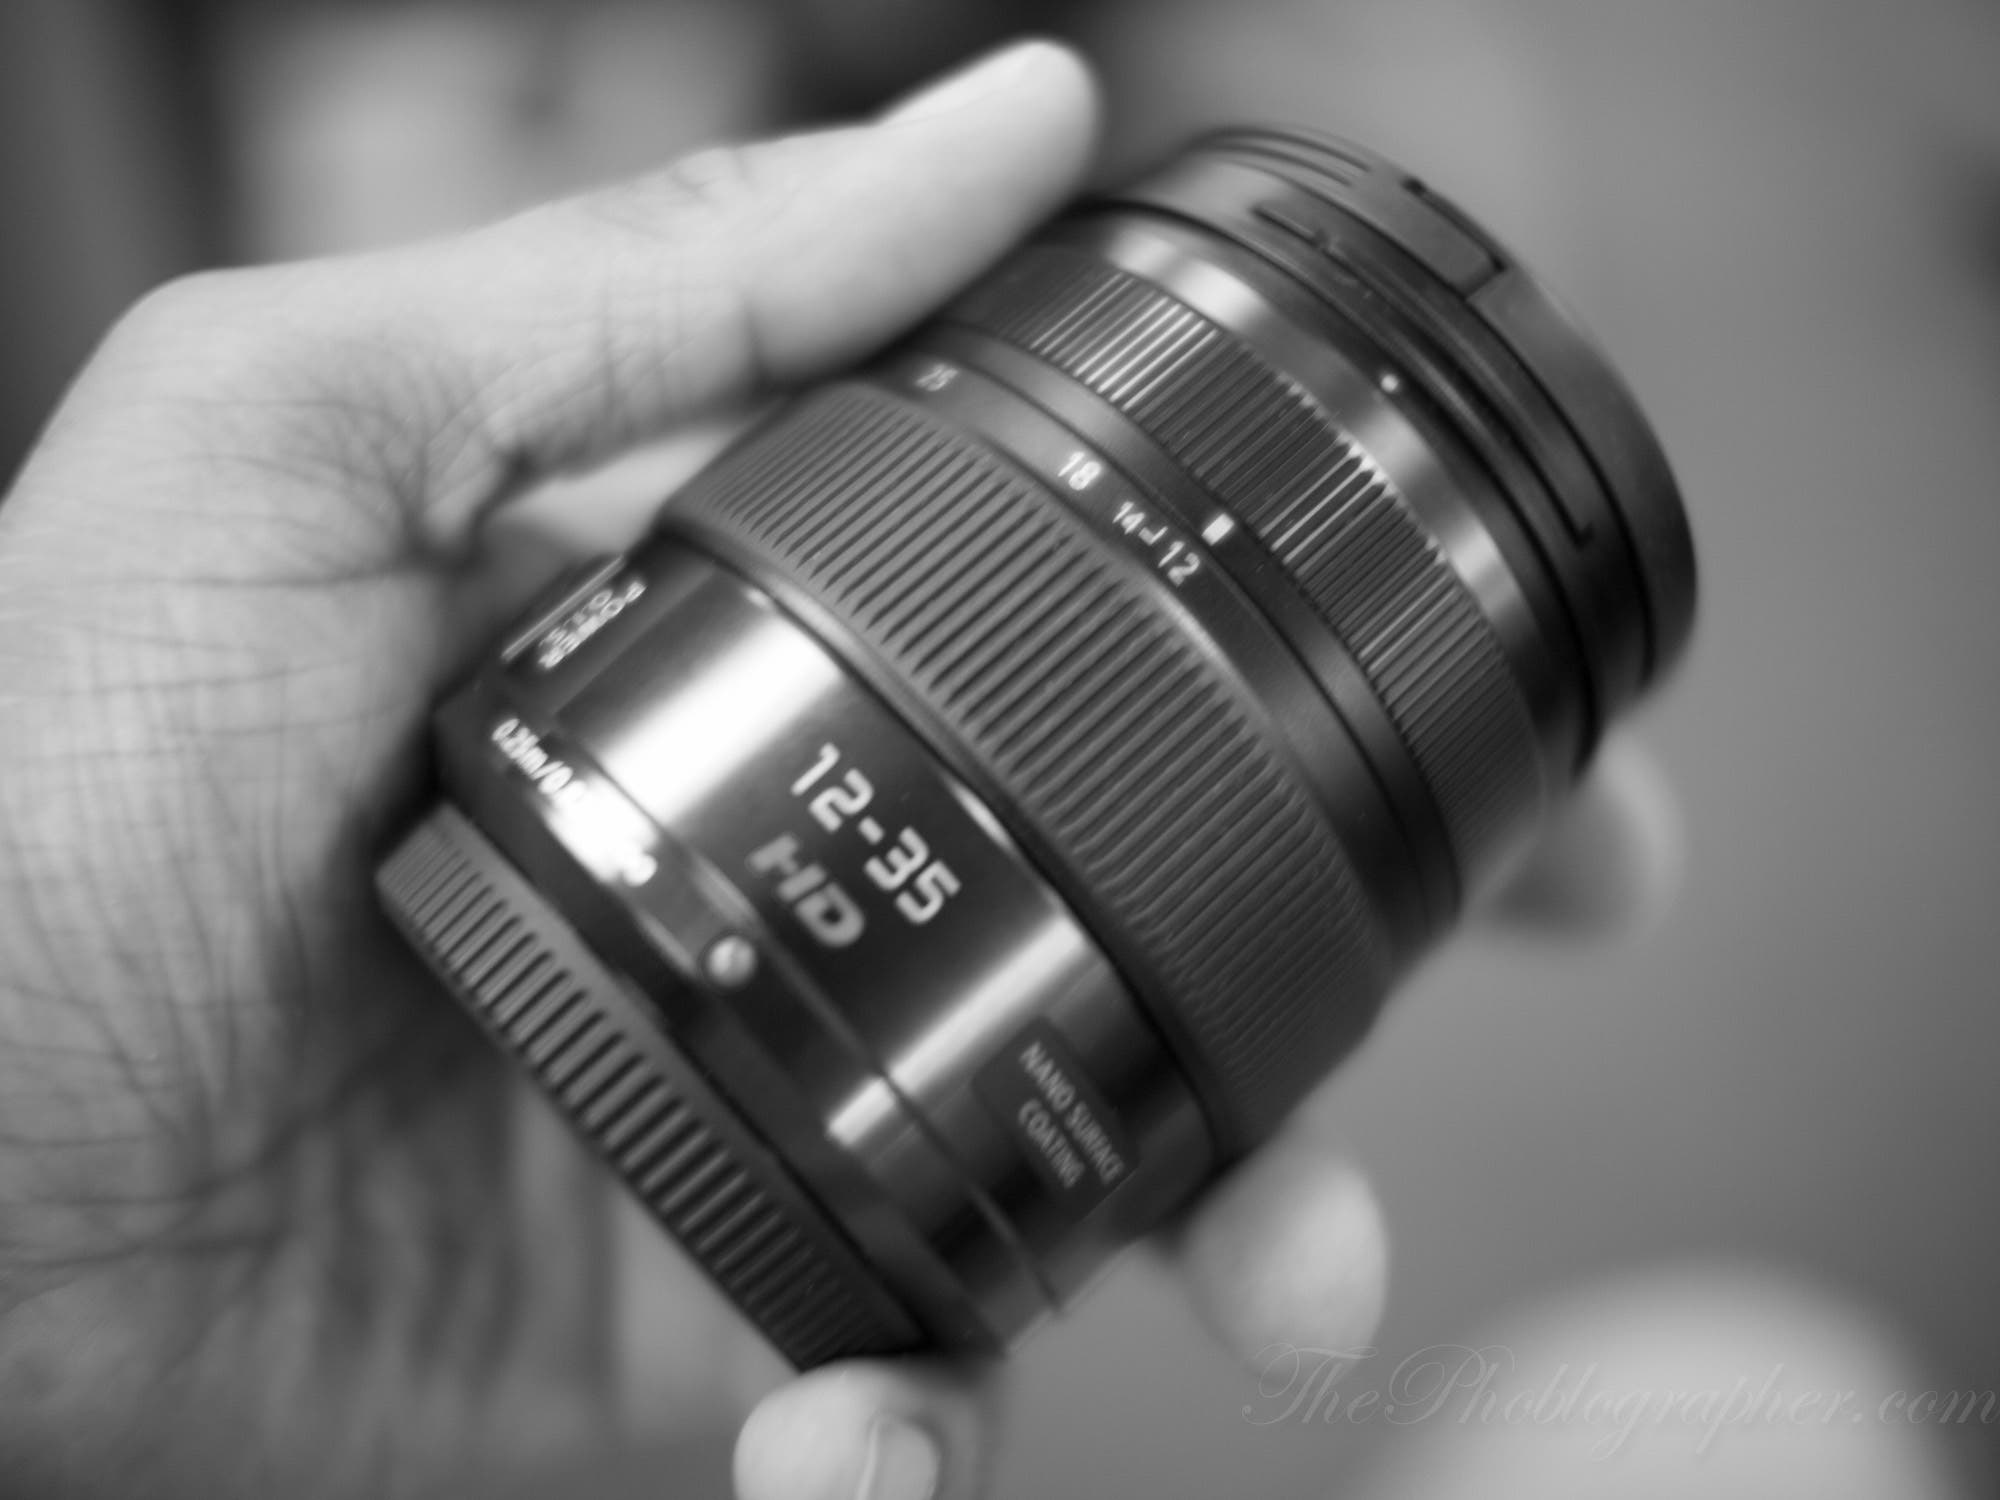 First Impressions: Panasonic 12-35mm f2.8 X Lens (Micro Four Thirds)